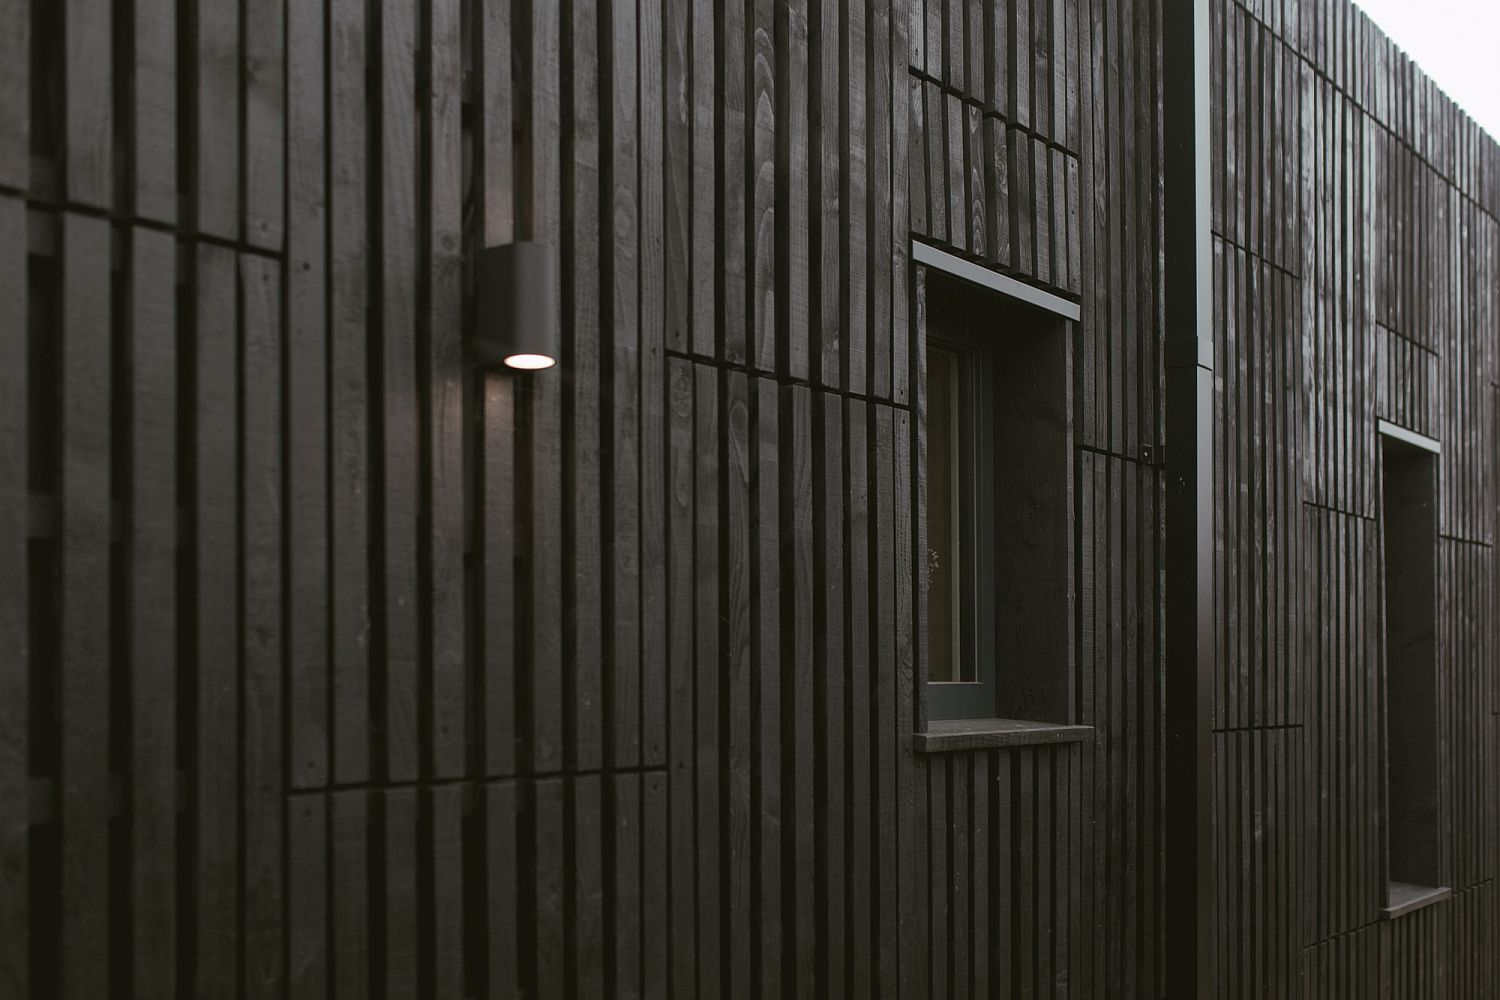 5d22f04c7ddf3Dark-box-shaped-exterior-of-the-house-in-Bicester